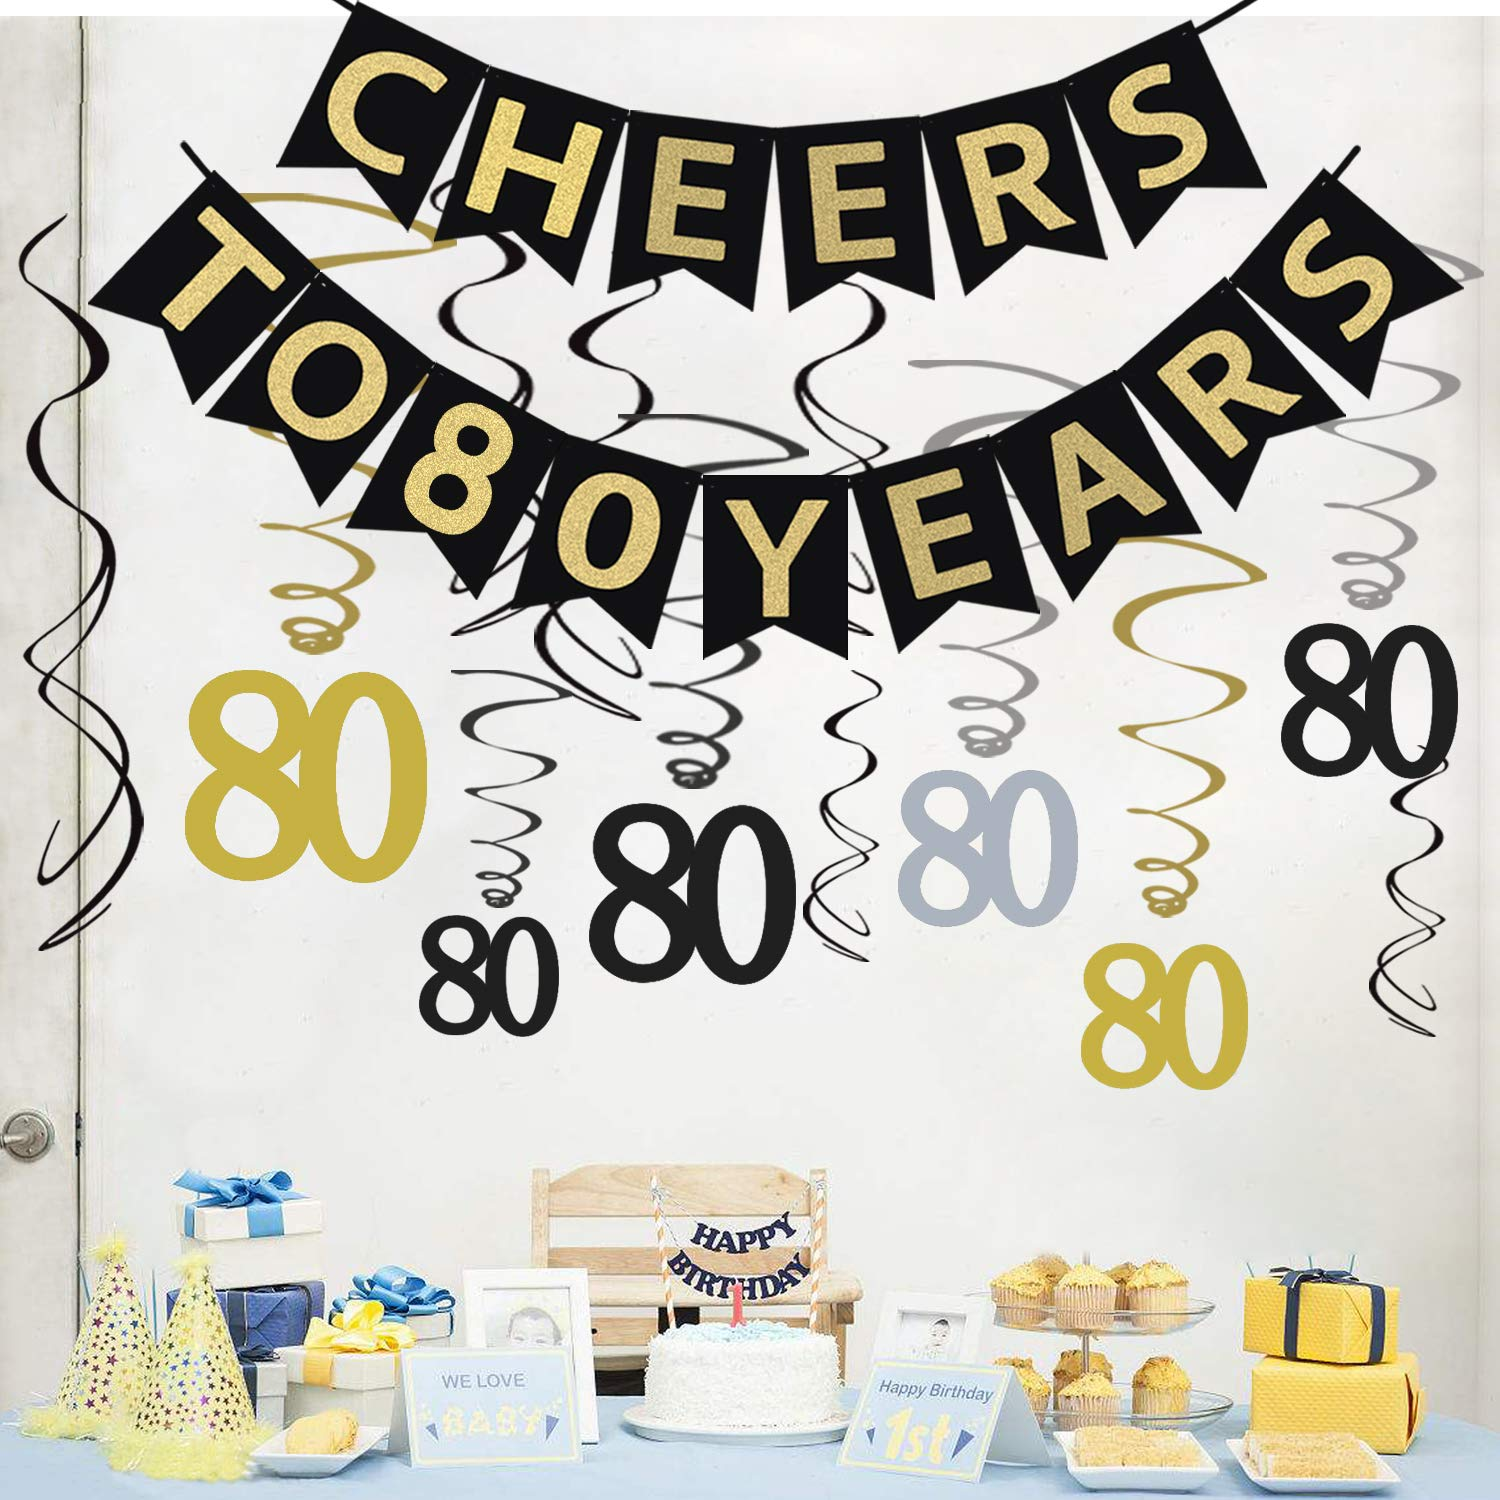 Tuoyi 80th Birthday Party Decorations KIT - Cheers to 80 Years Banner, Sparkling Celebration 80 Hanging Swirls, Perfect 80 Years Old Party Supplies 80th Anniversary Decorations by Tuoyi (Image #4)